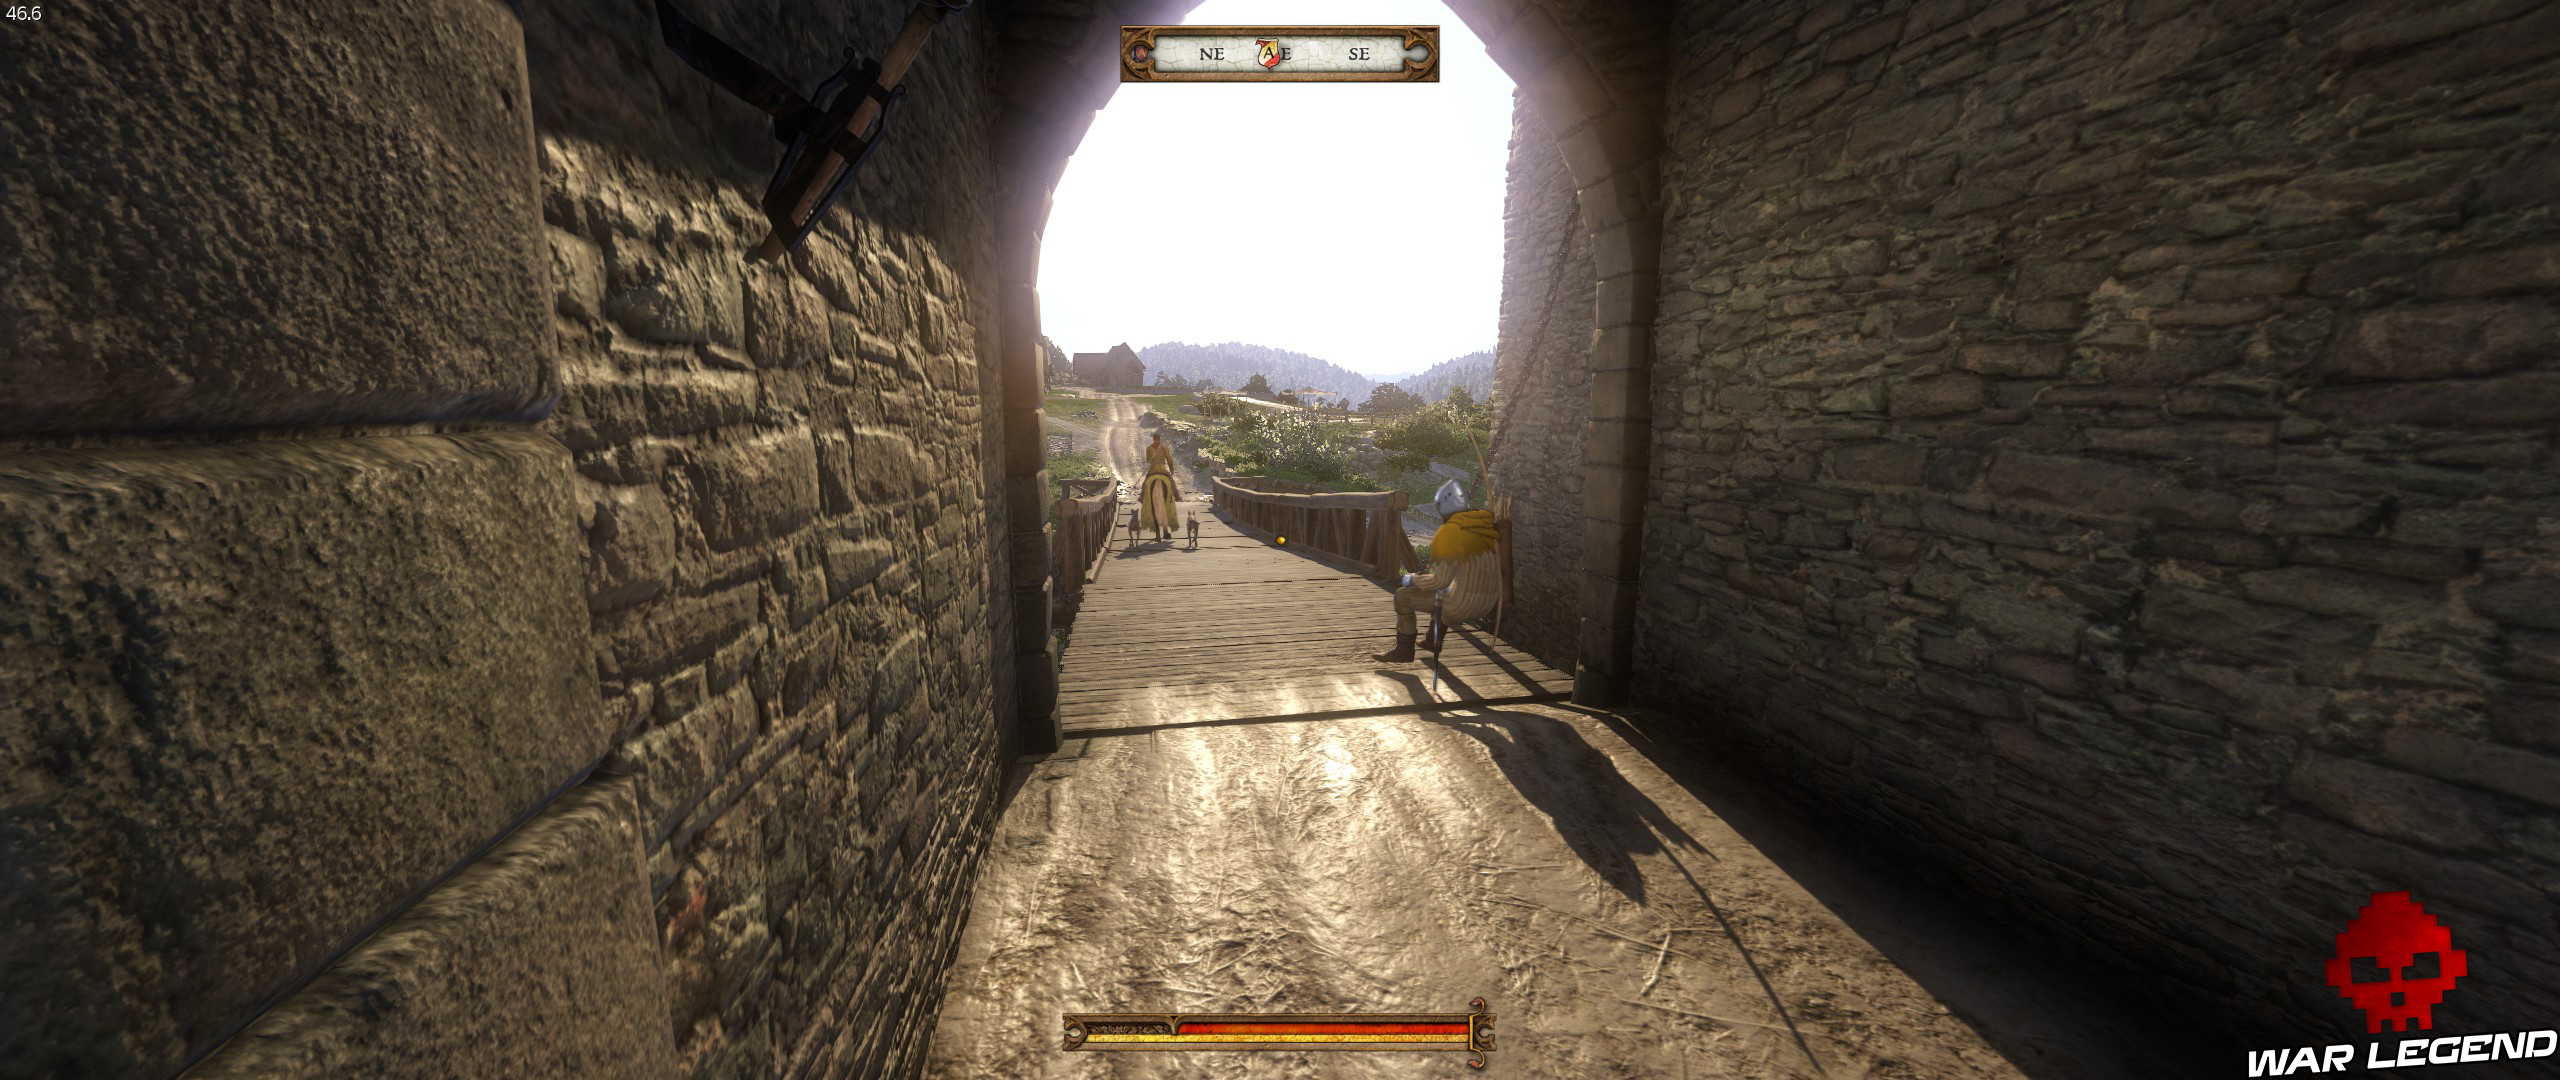 Kingdome Come Deliverance bug disparition d'objet